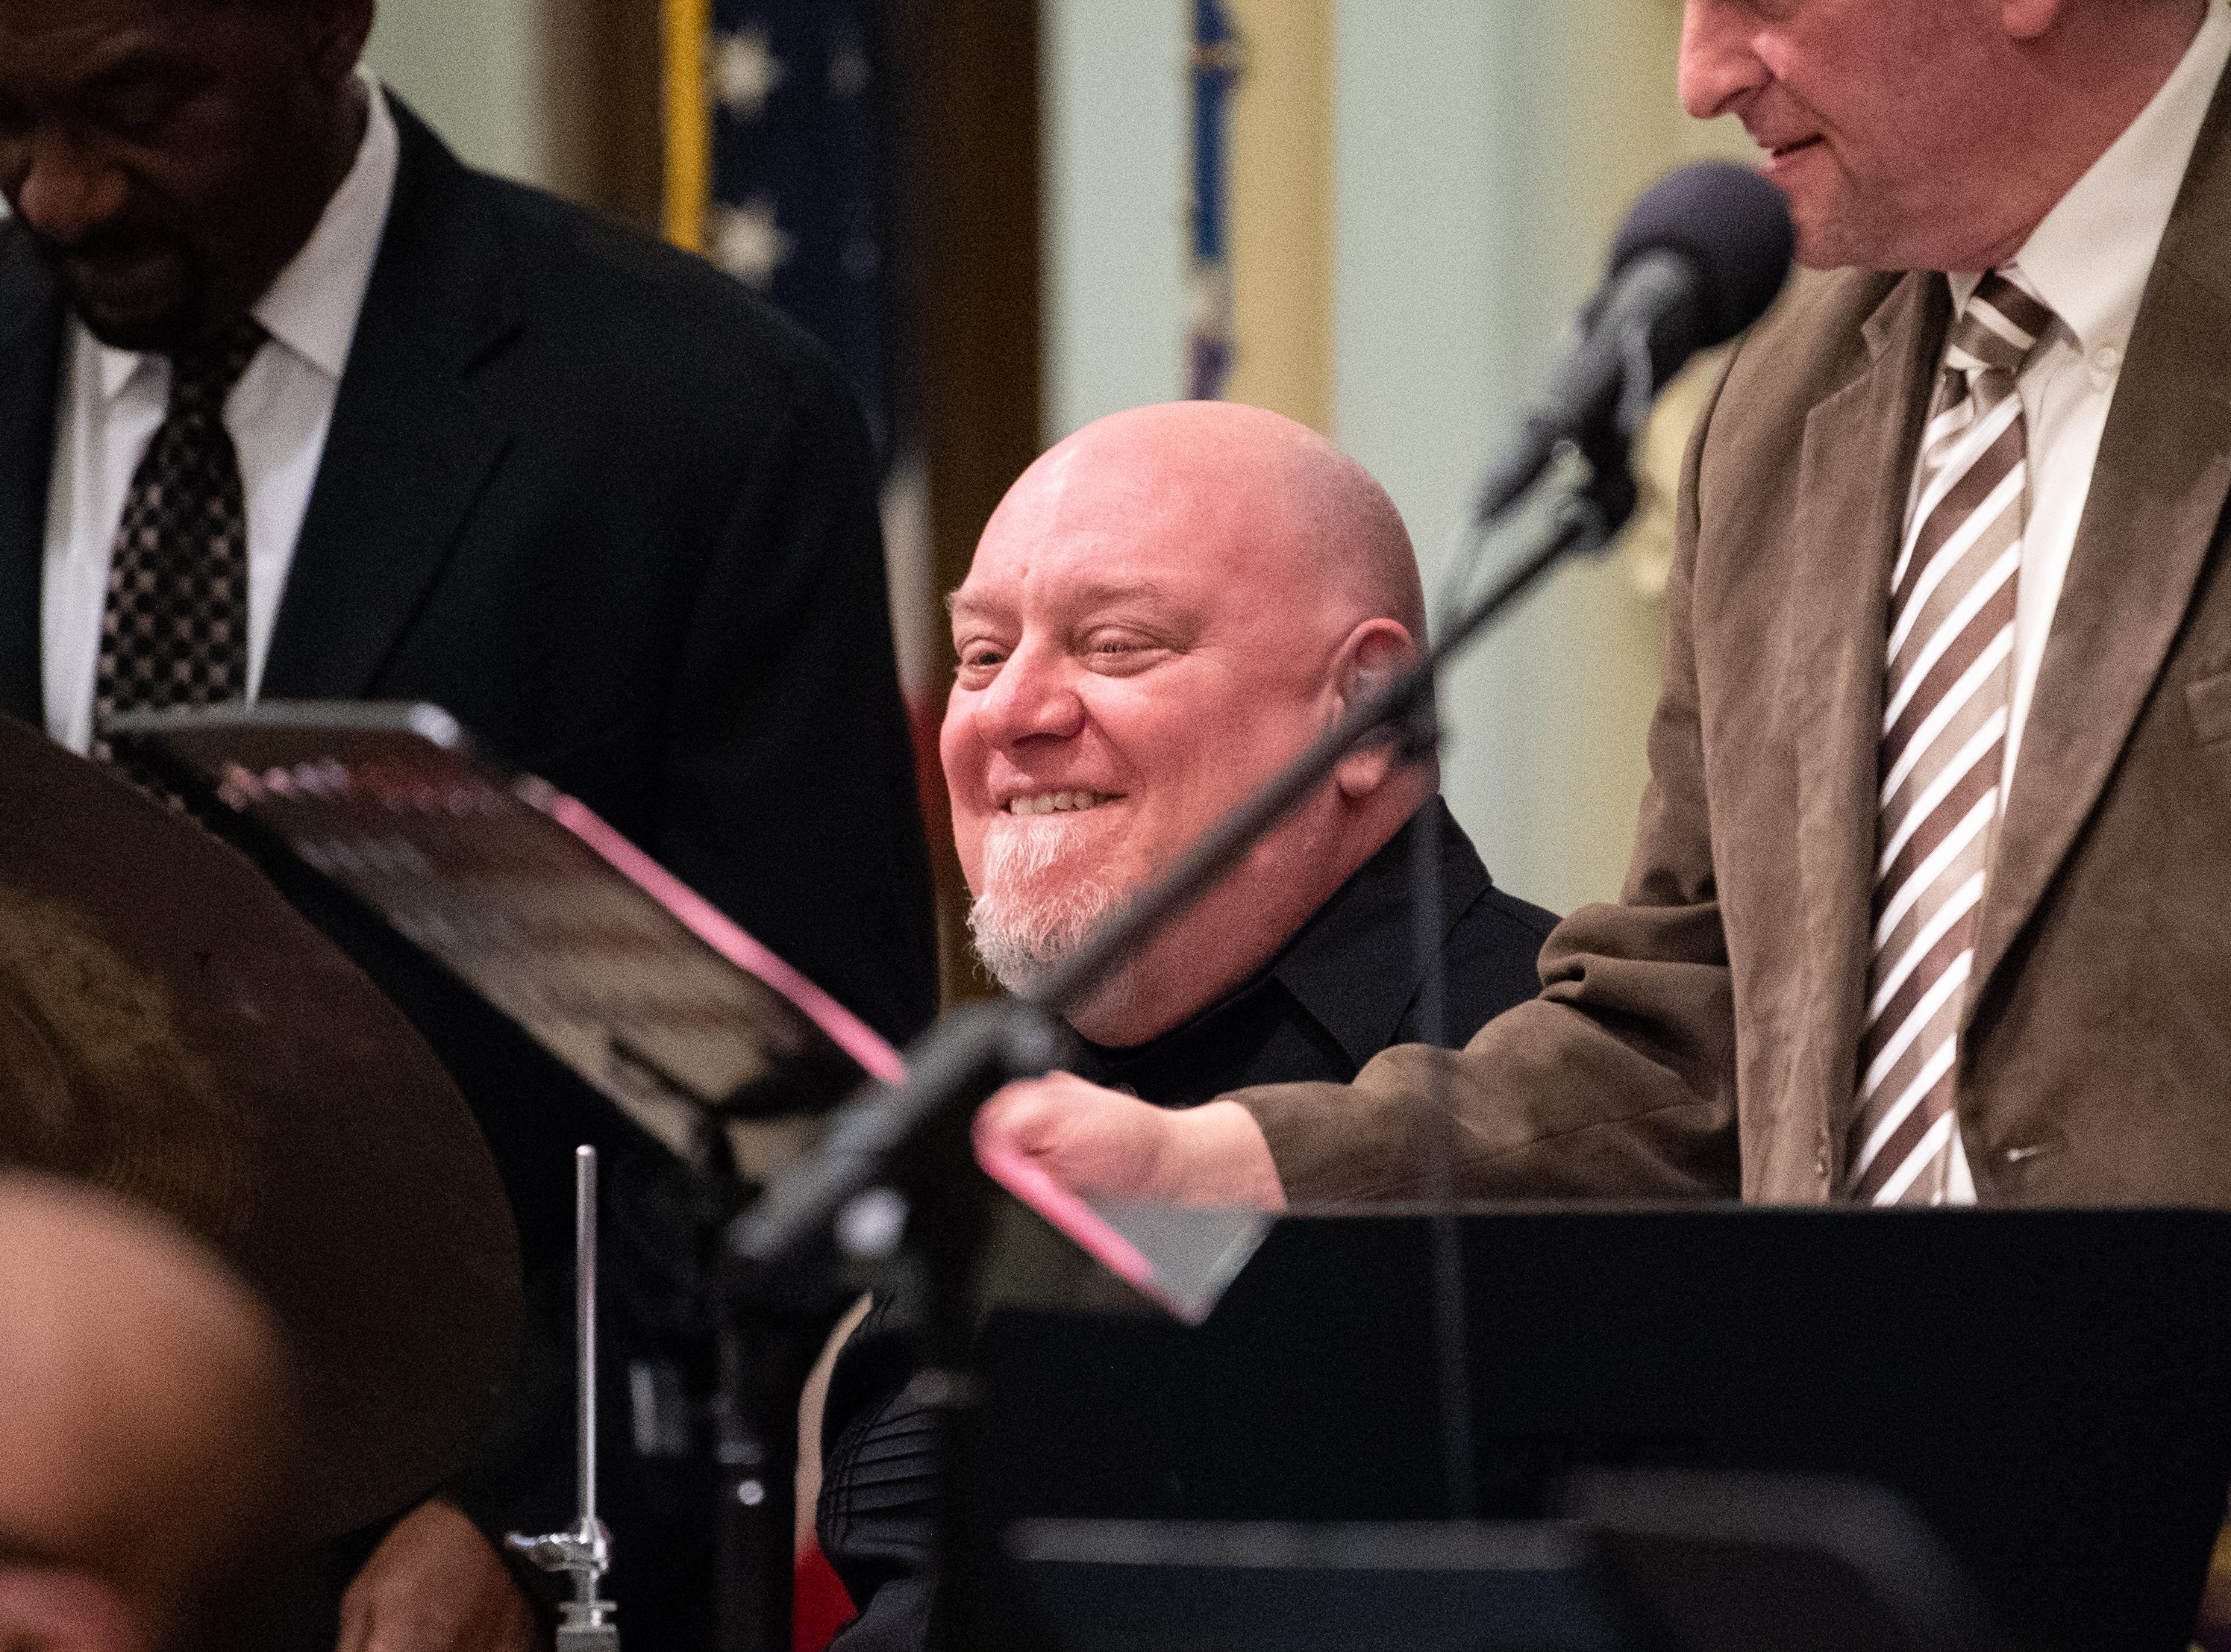 Drum player Jeff Stabley keeps the beat during the 21st annual Jazz Vespers concert at First Presbyterian Church in York, January 12, 2019.